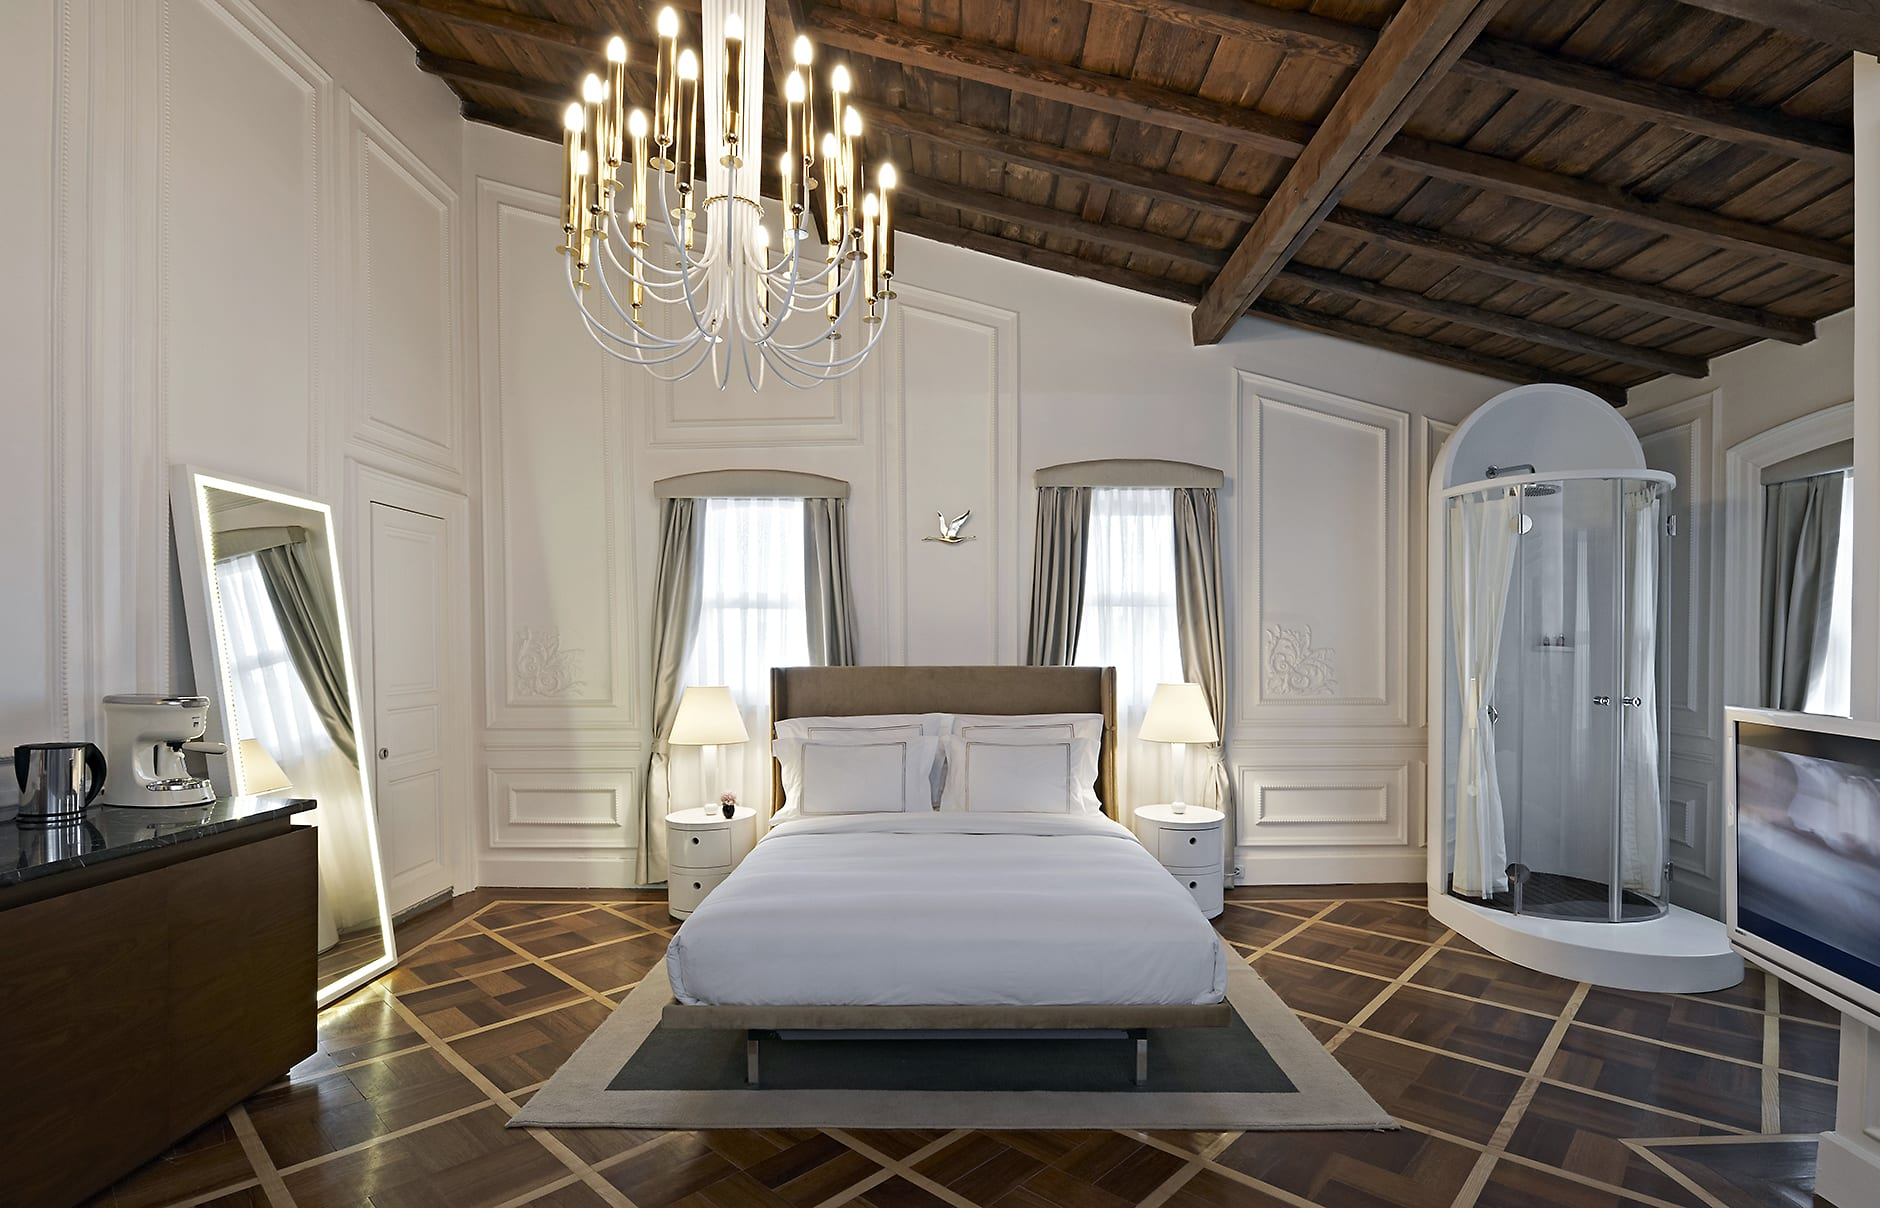 The house hotel galatasaray istanbul luxury hotels for Decor hotel istanbul